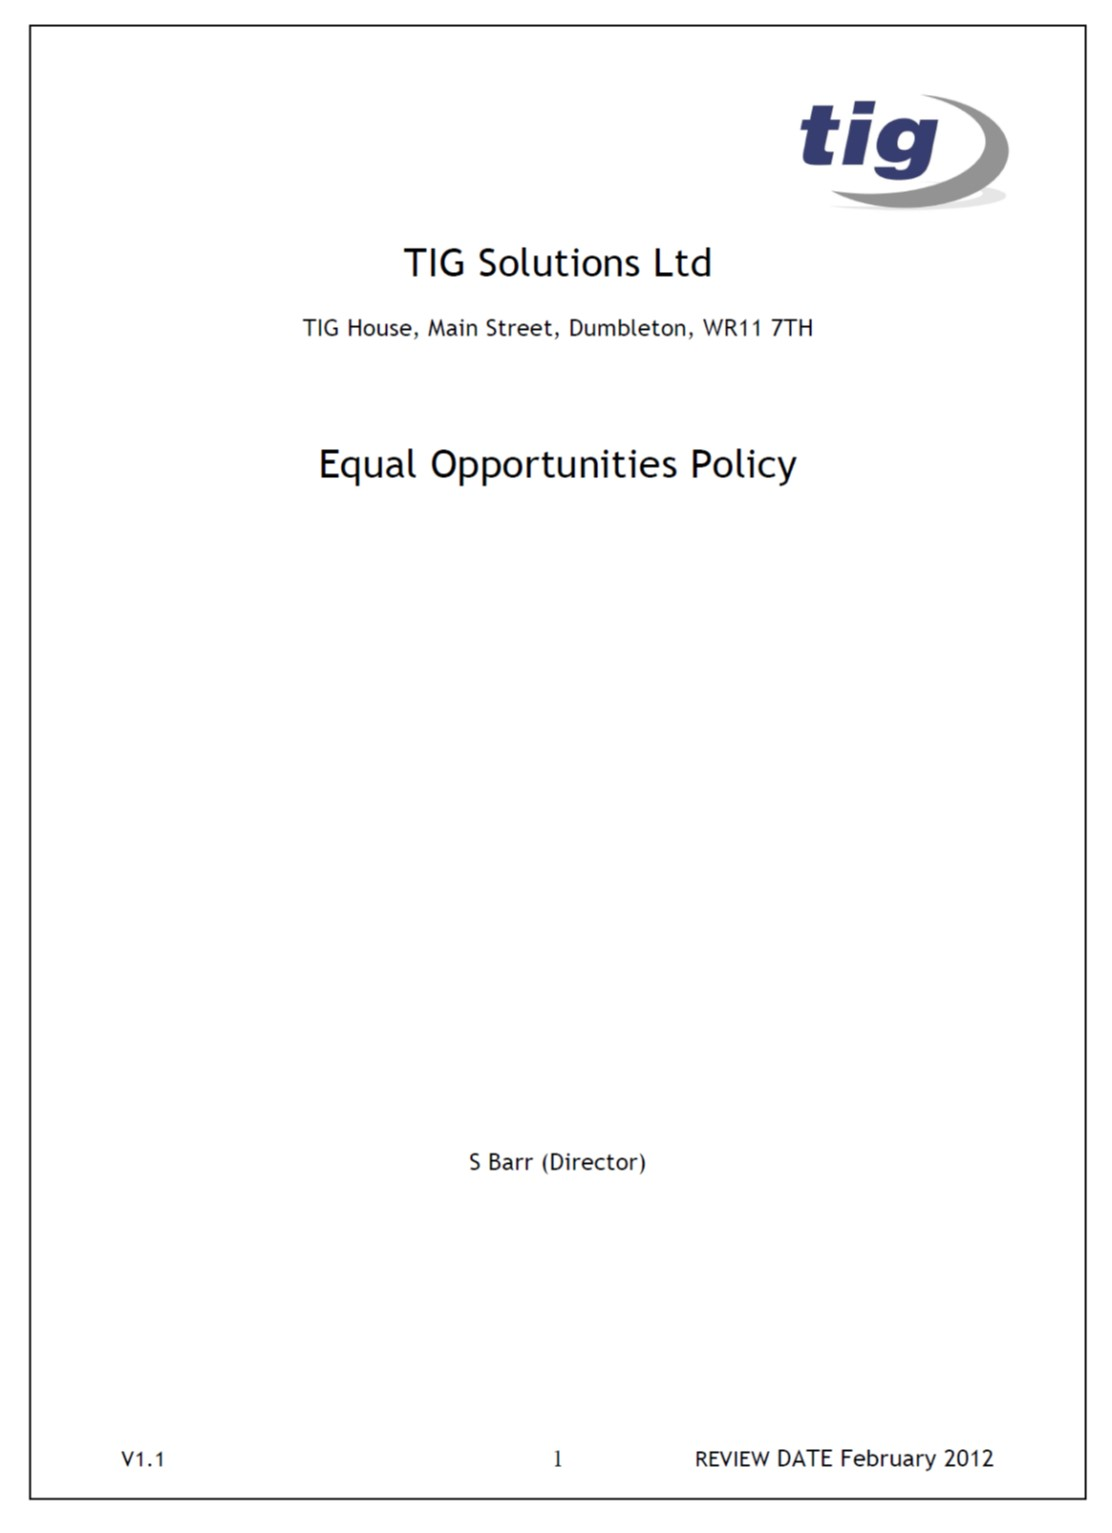 ethics: equal opportunities policy